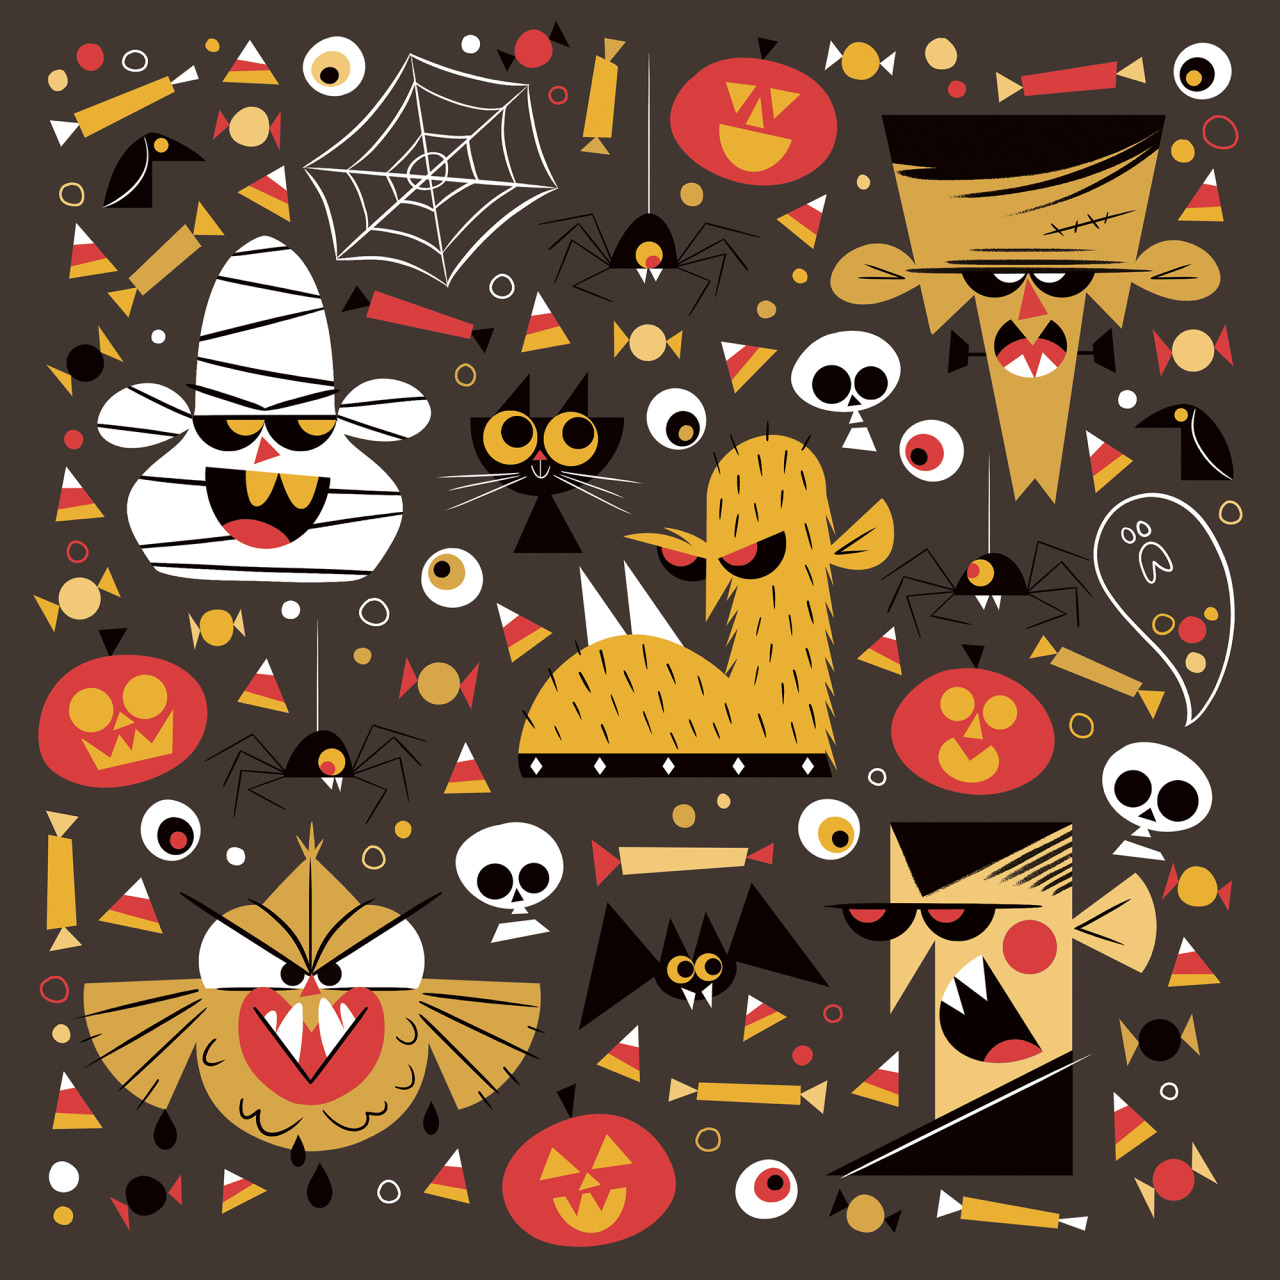 Halloween illustrations by James Boorman